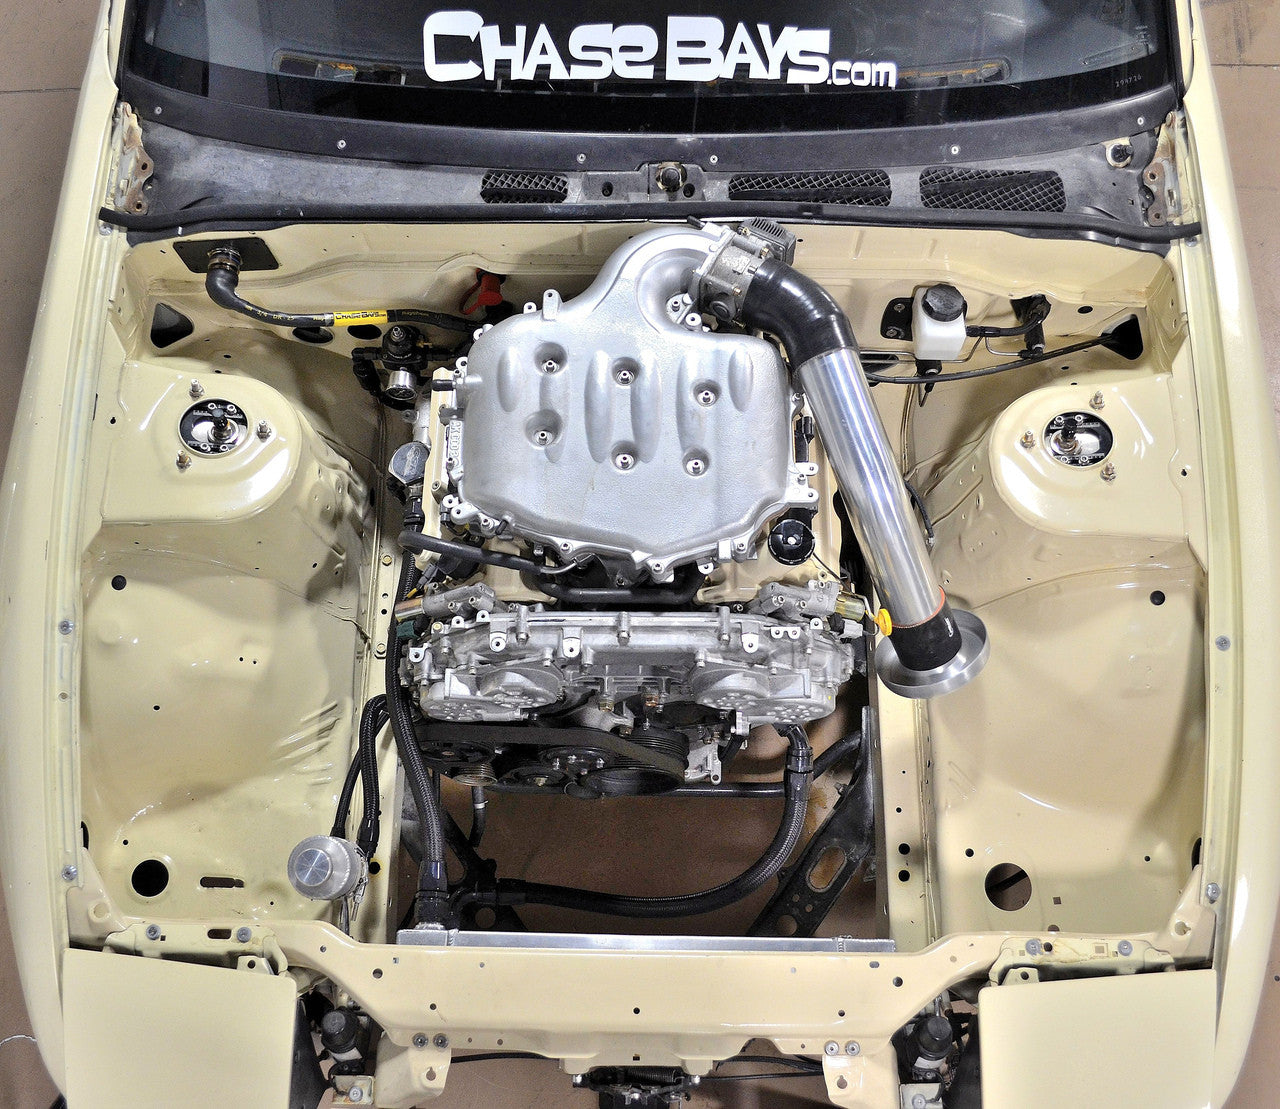 Chase Bays AN Fuel Line Kit Nissan 240sx w/ VQ35 1989-2002